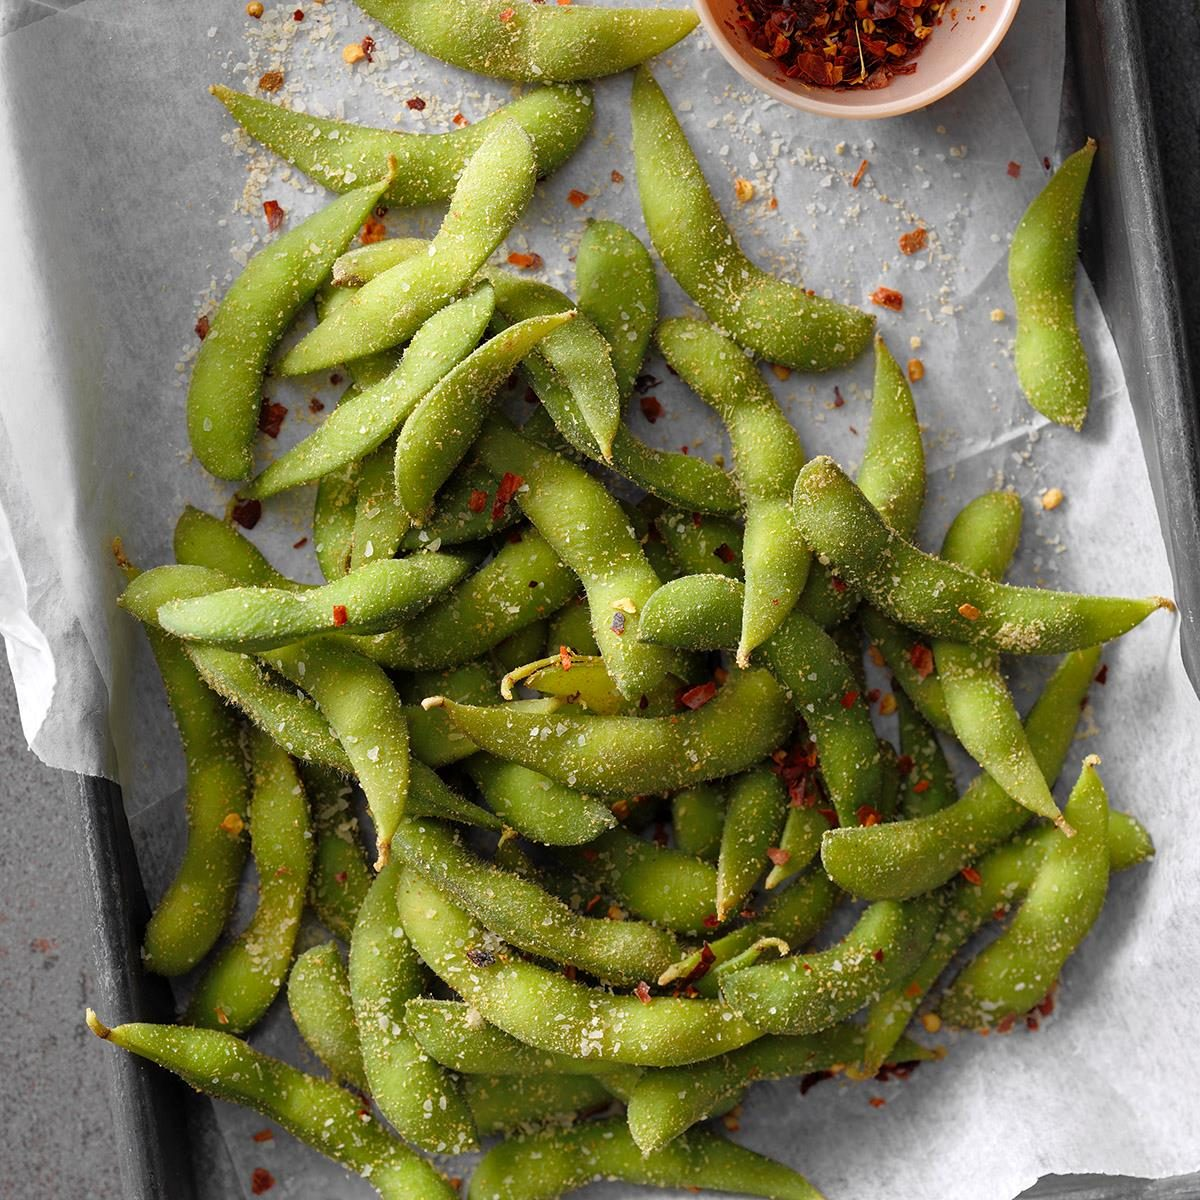 Inspired by: Cheesecake Factory Spicy Edamame